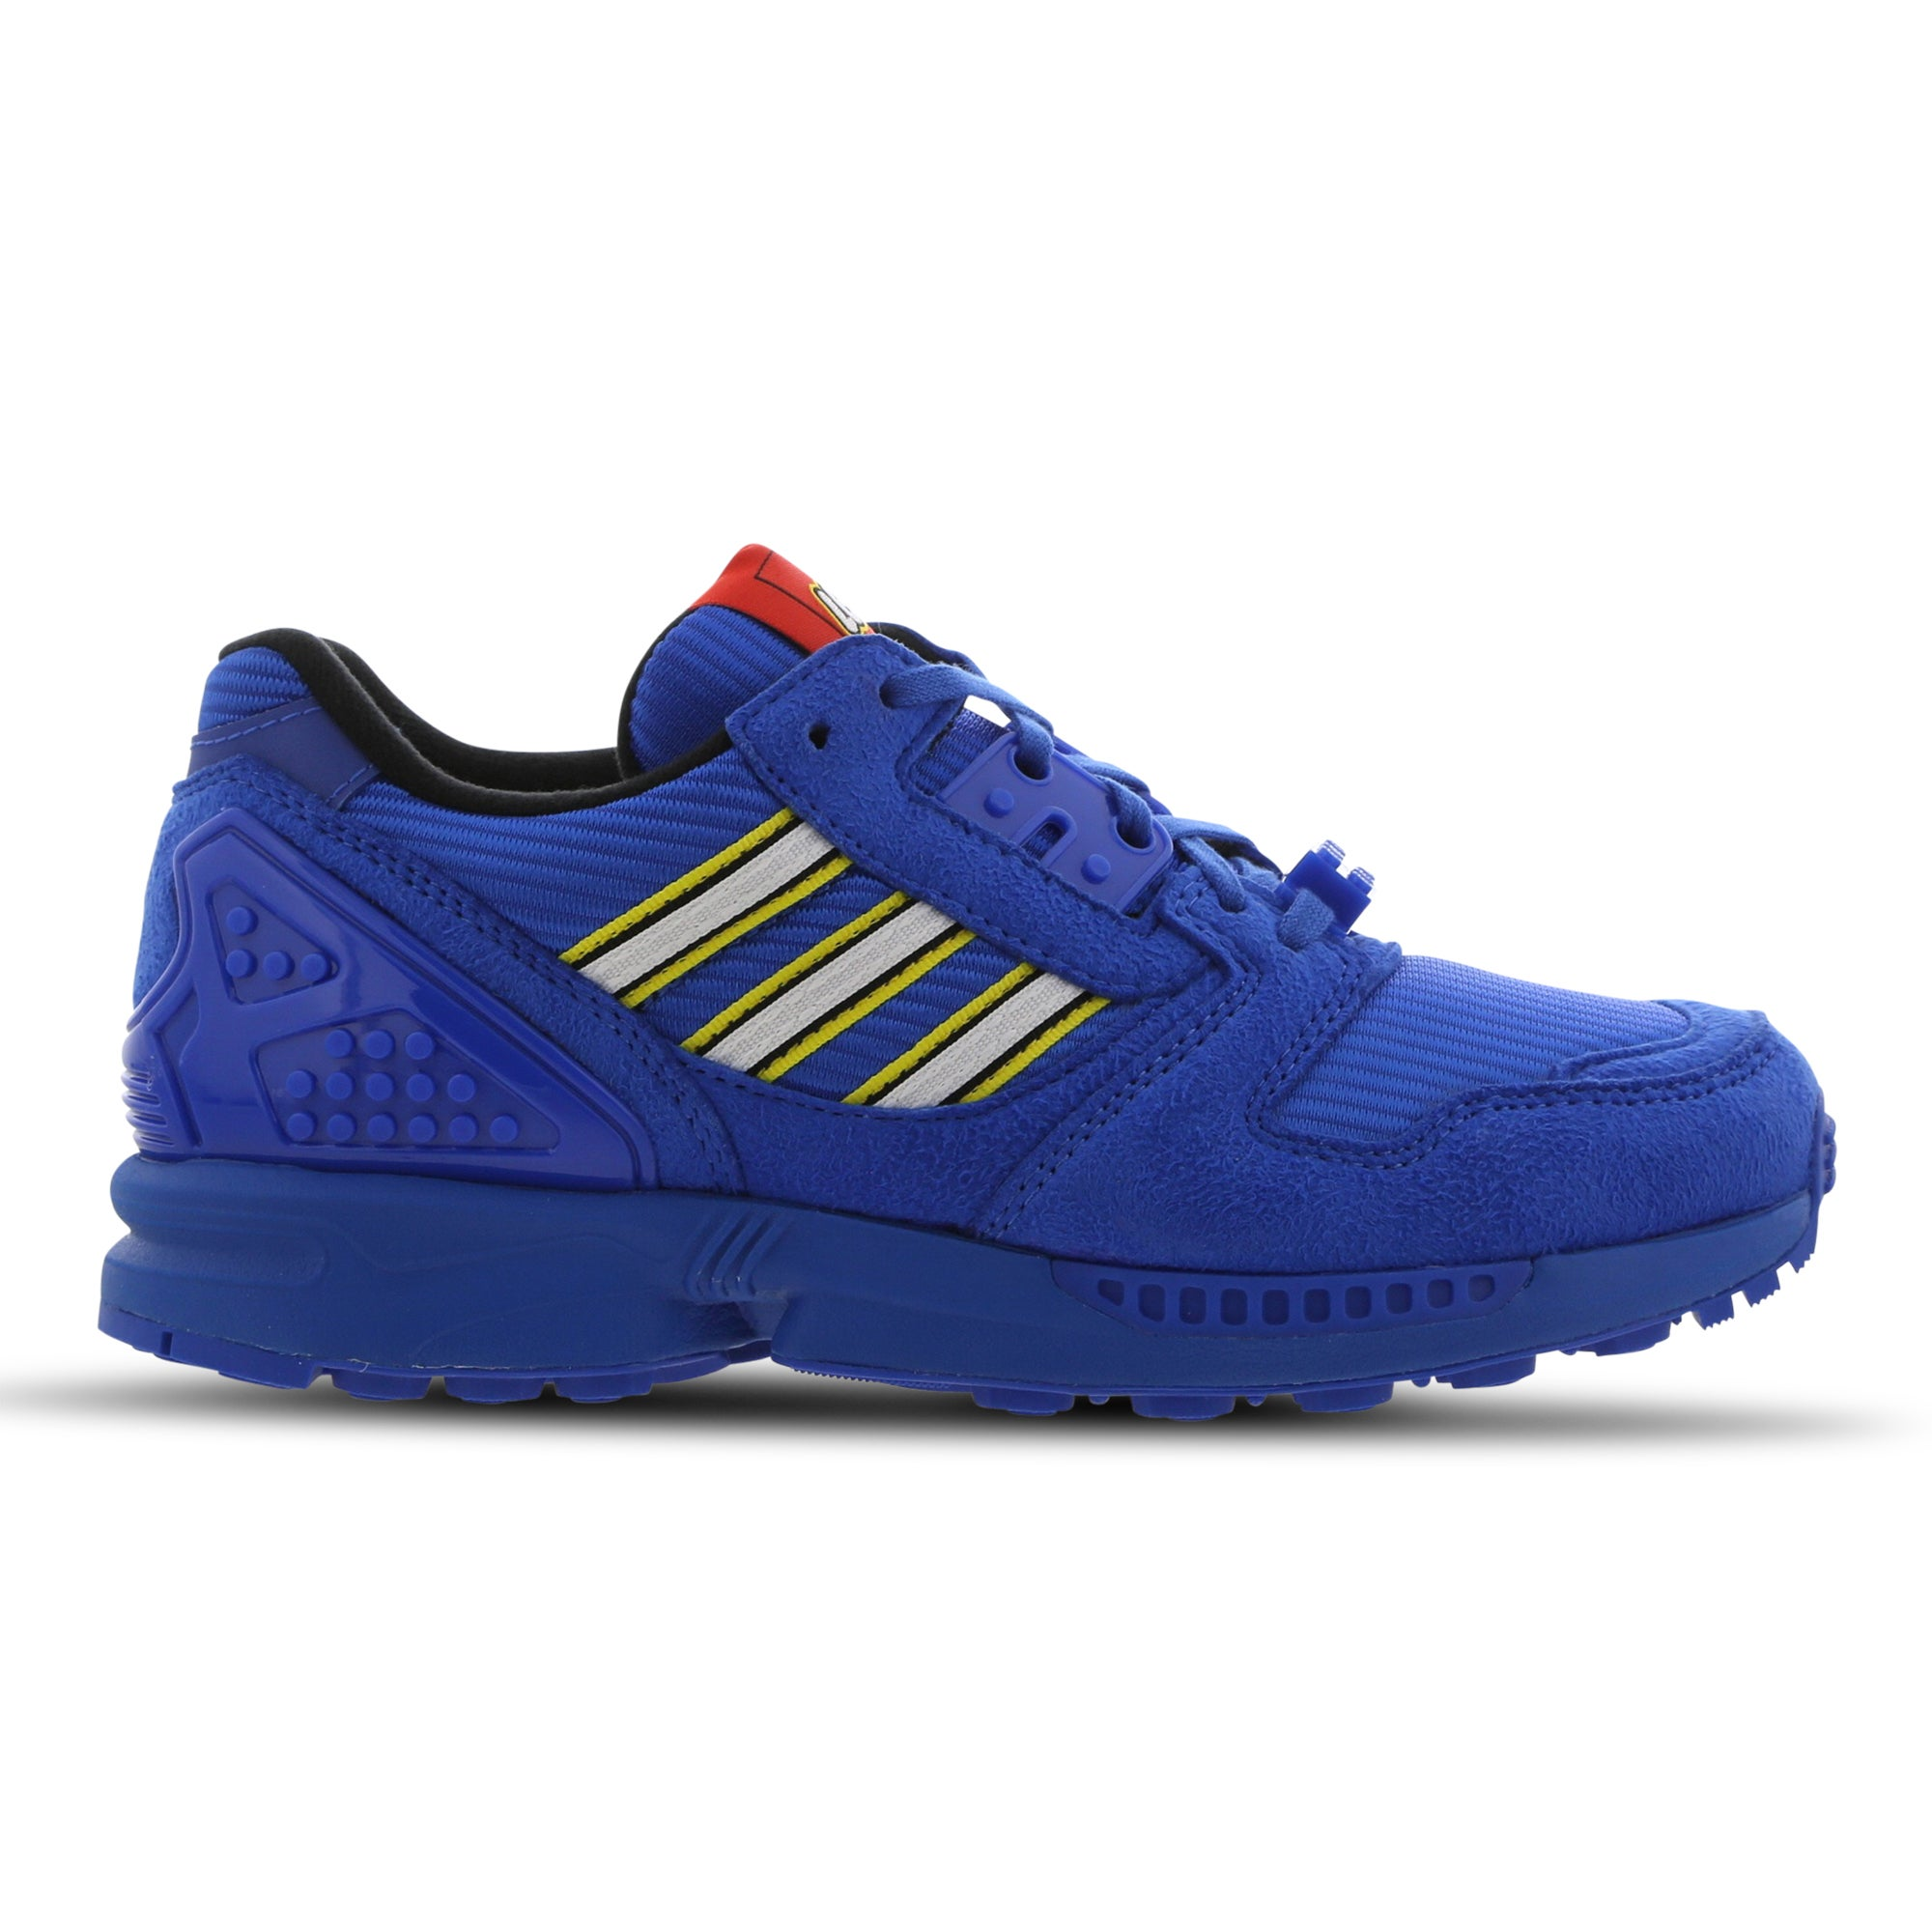 adidas ZX 8000 Lego Shoes